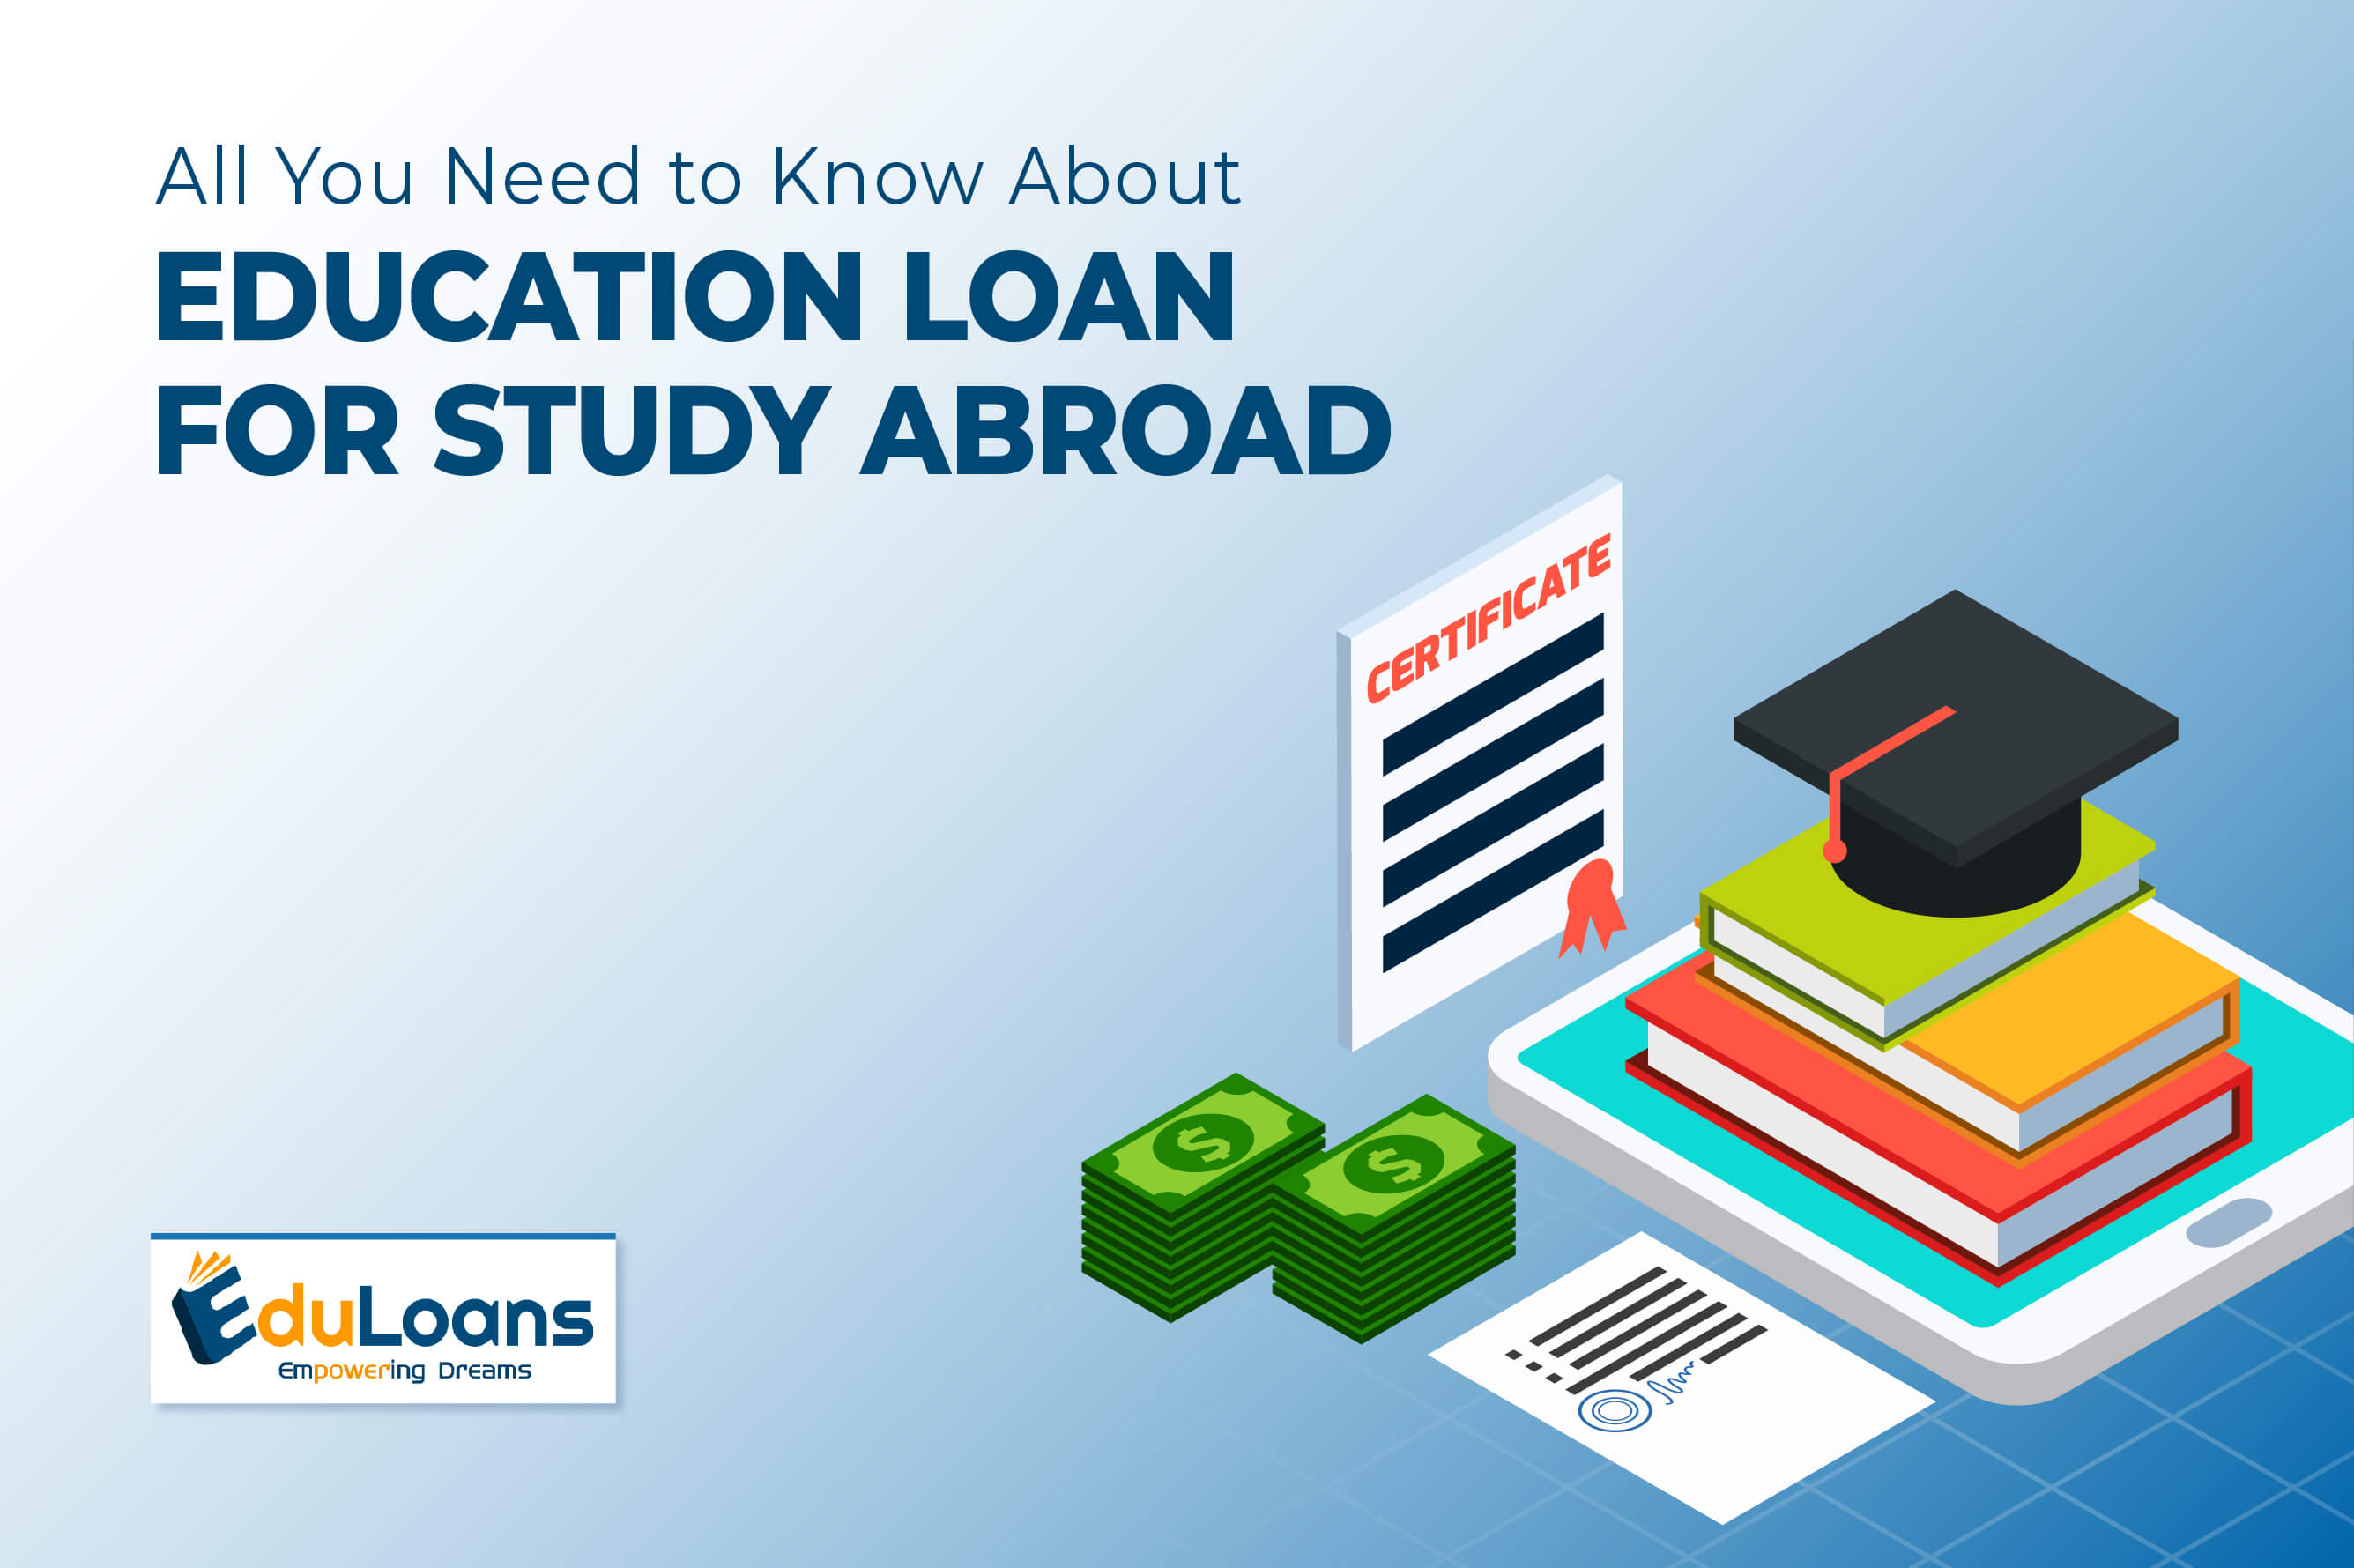 All You Need to Know About Education Loan for Study Abroad